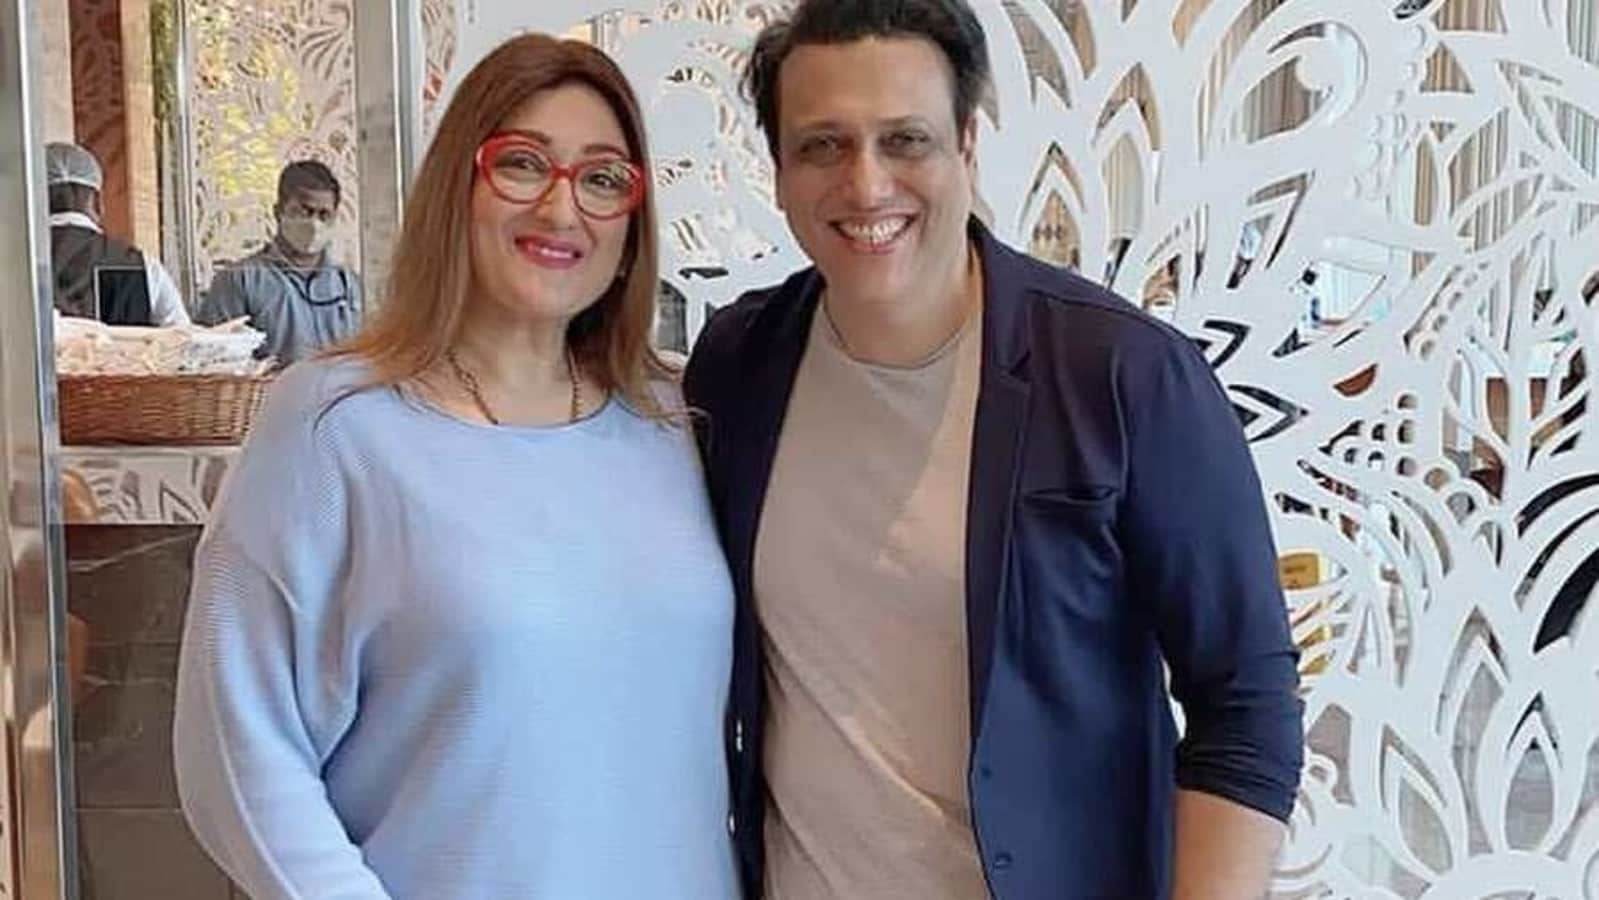 Before Govinda, his wife Sunita had tested positive for Covid-19: 'I think  I got infected in Kolkata' | Hindustan Times